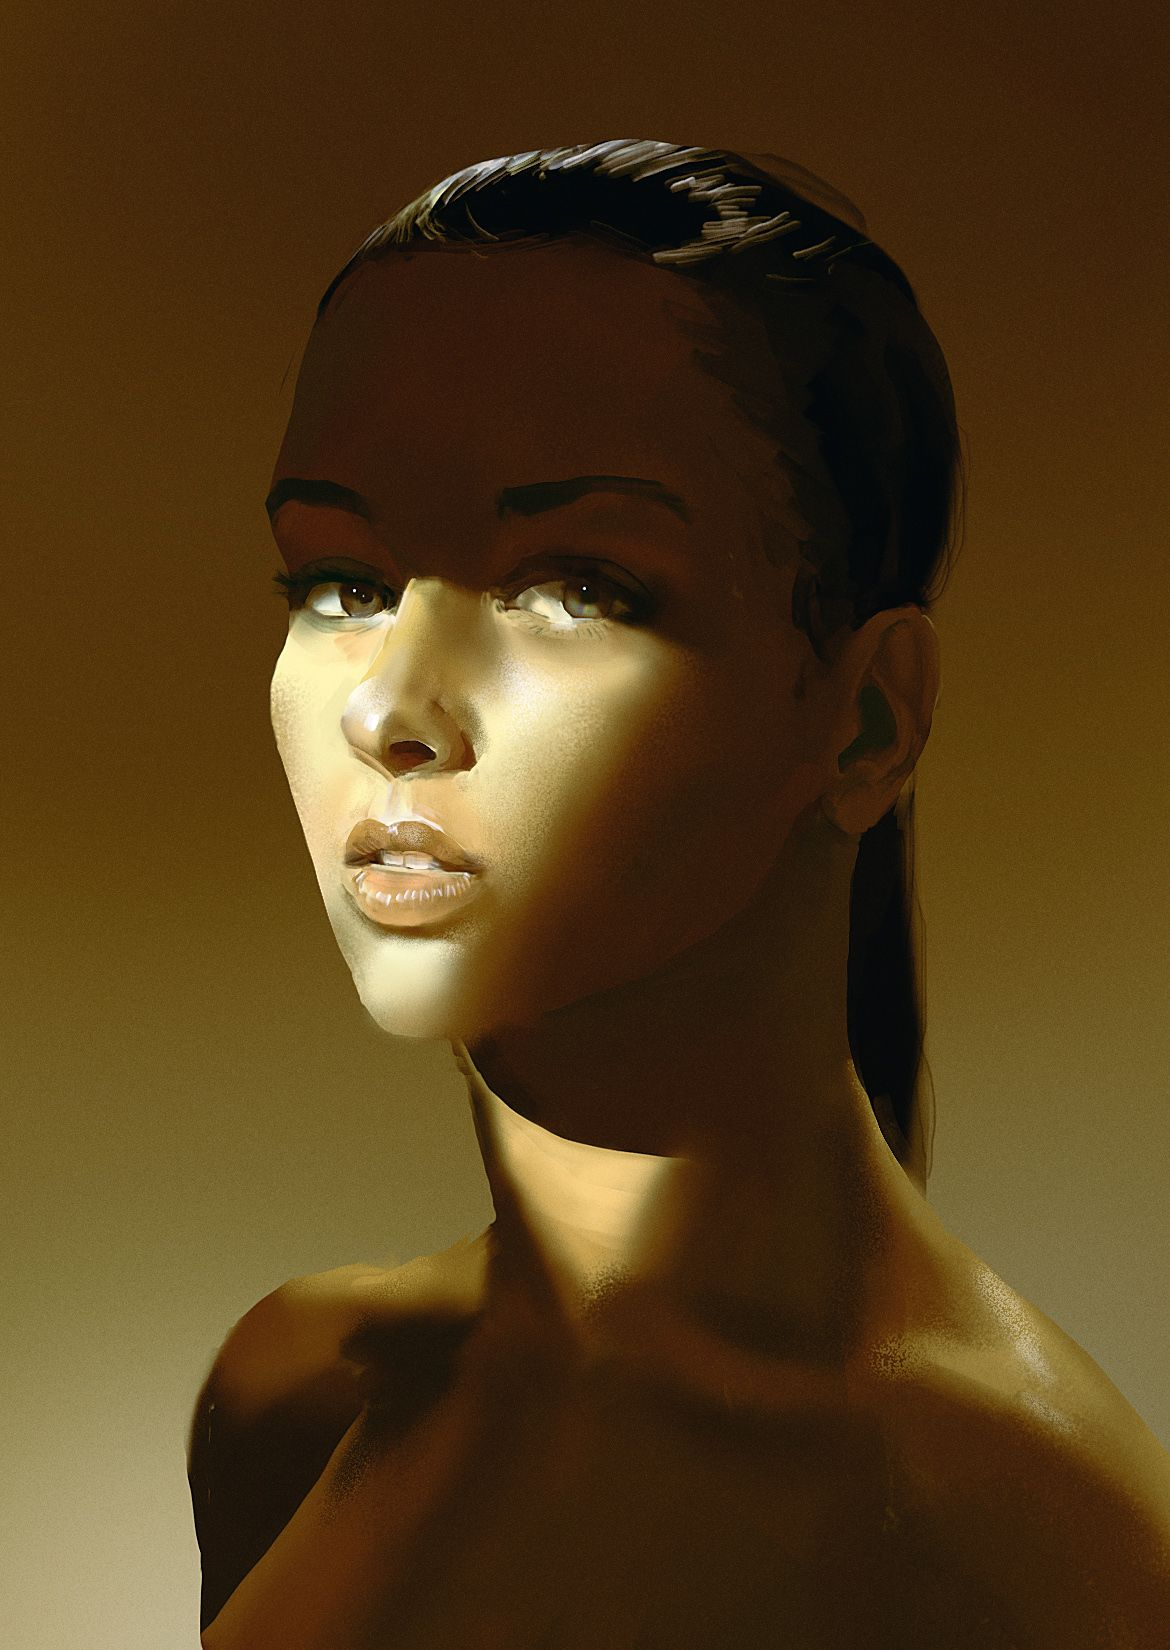 Painting Studies on Behance